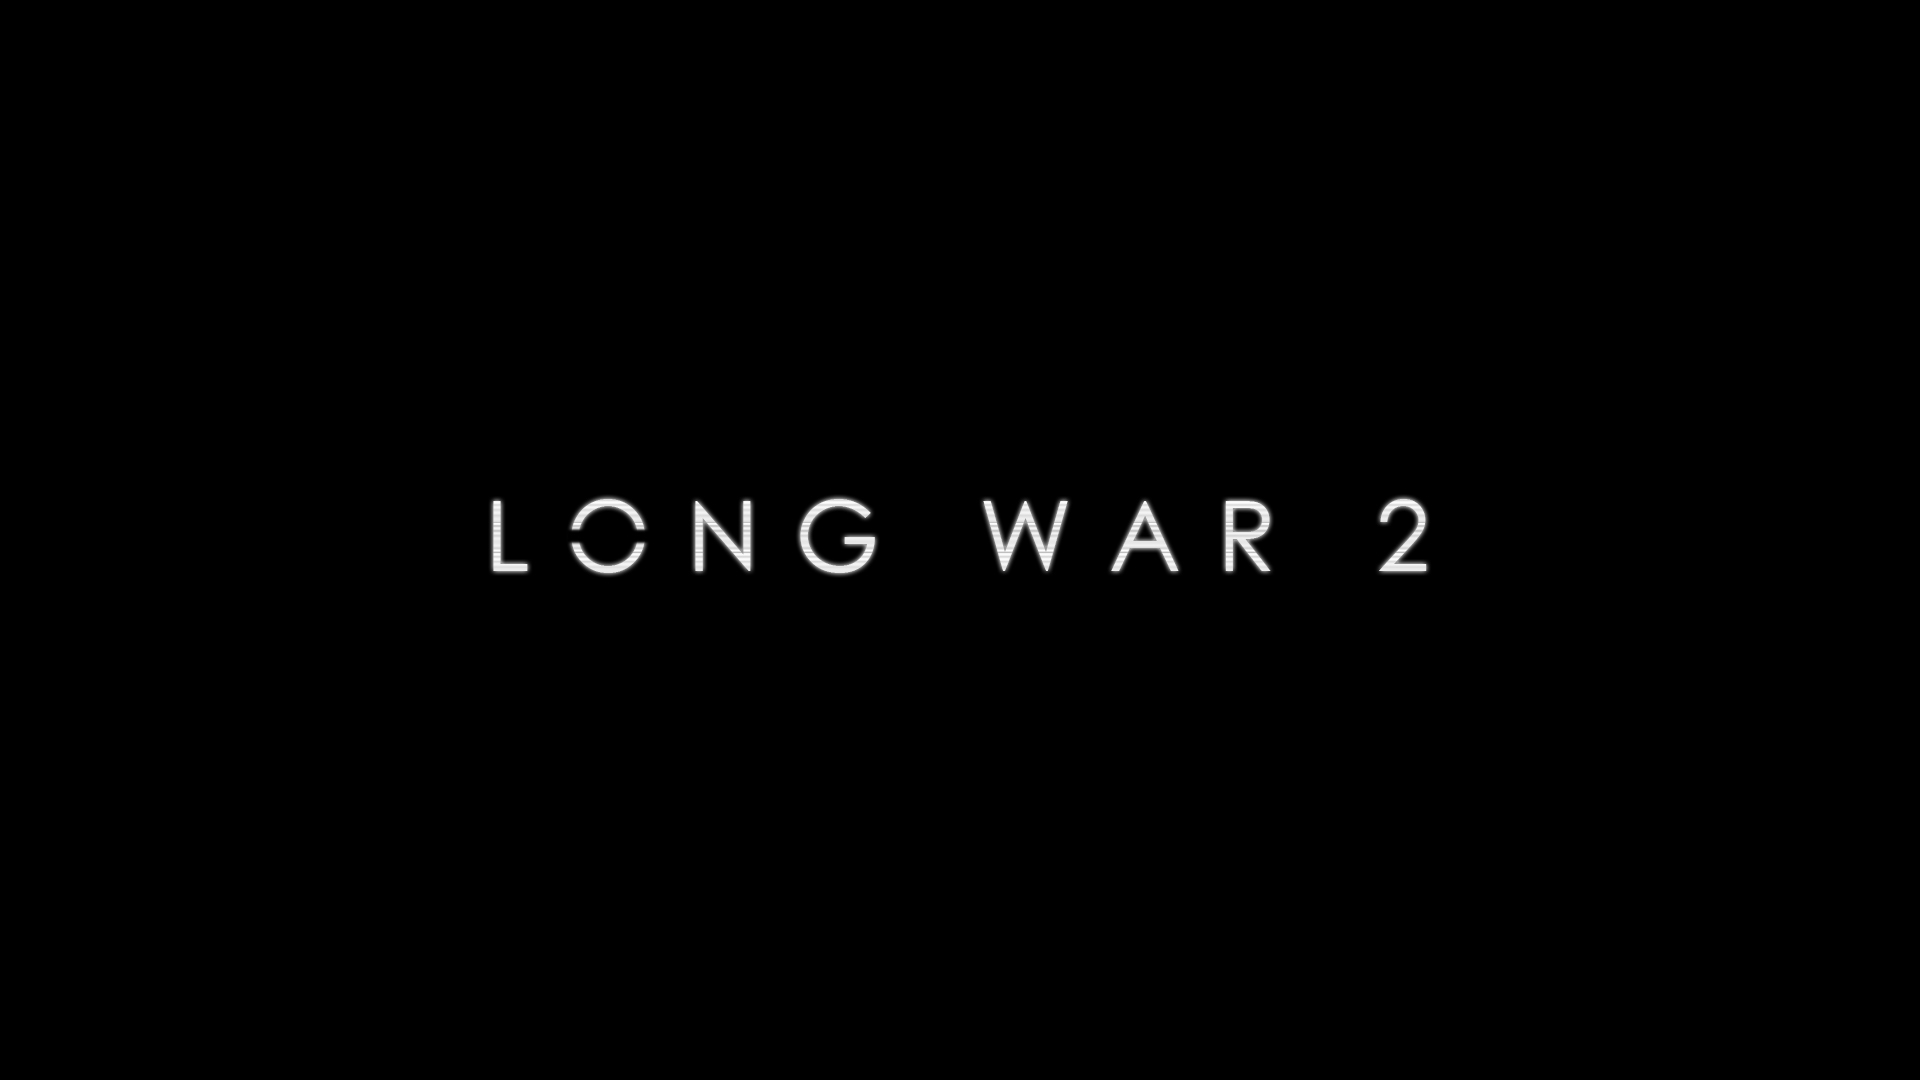 Photo of XCOM 2 Long War 2 Mod Announced Only For PC